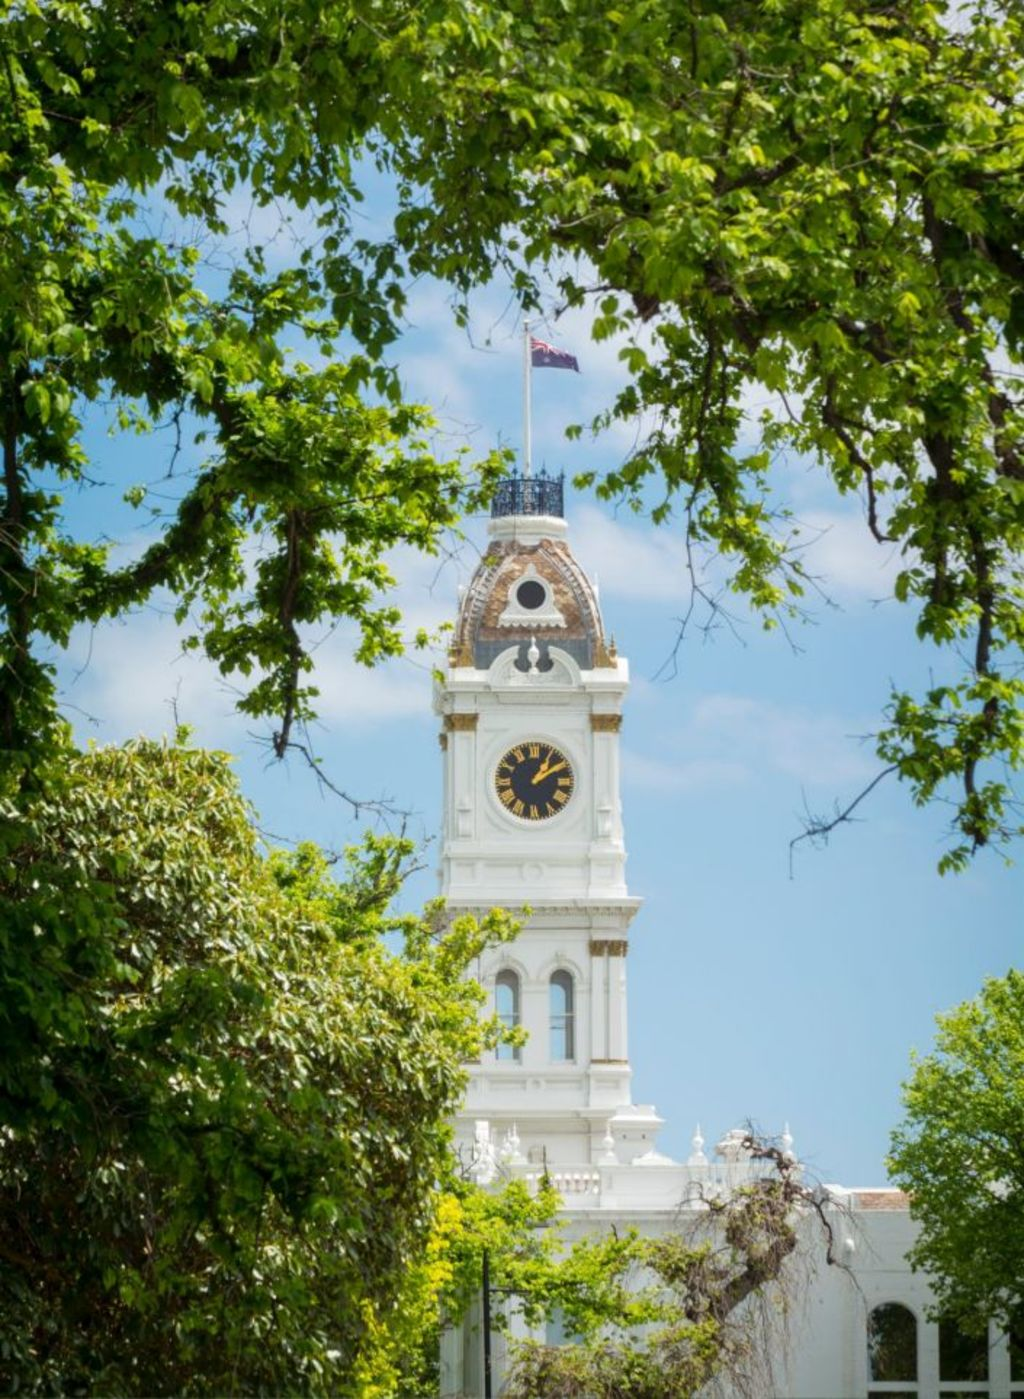 The suburb of Malvern is characterised by its beautiful architecture, like  Malvern Town Hall. Photo: Michael Rayner